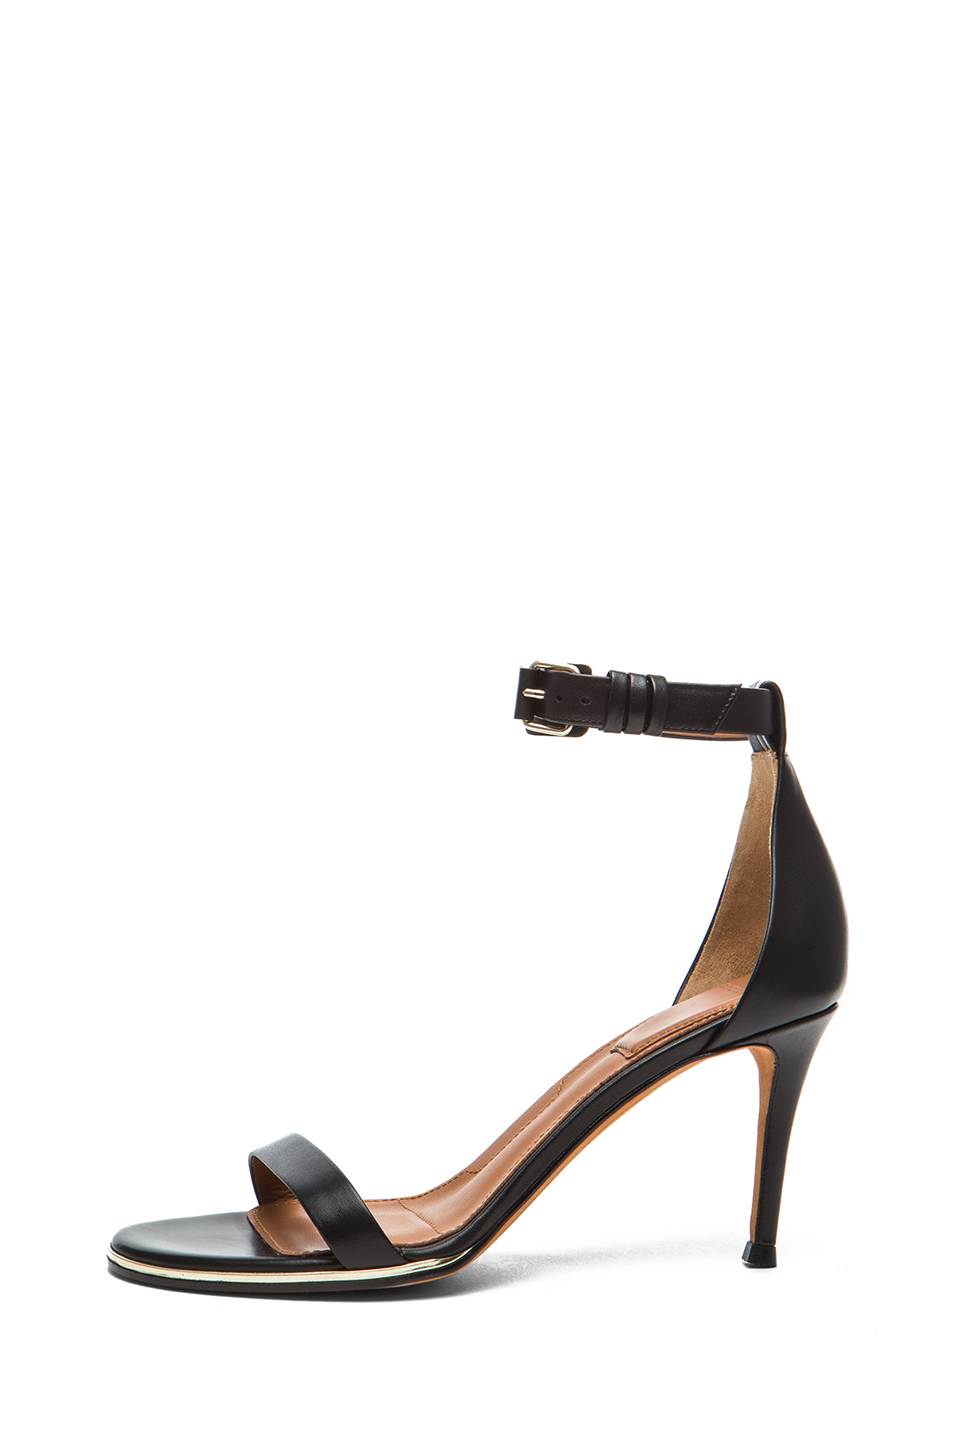 GIVENCHY|Nadia Calfskin Leather Sandals in Black